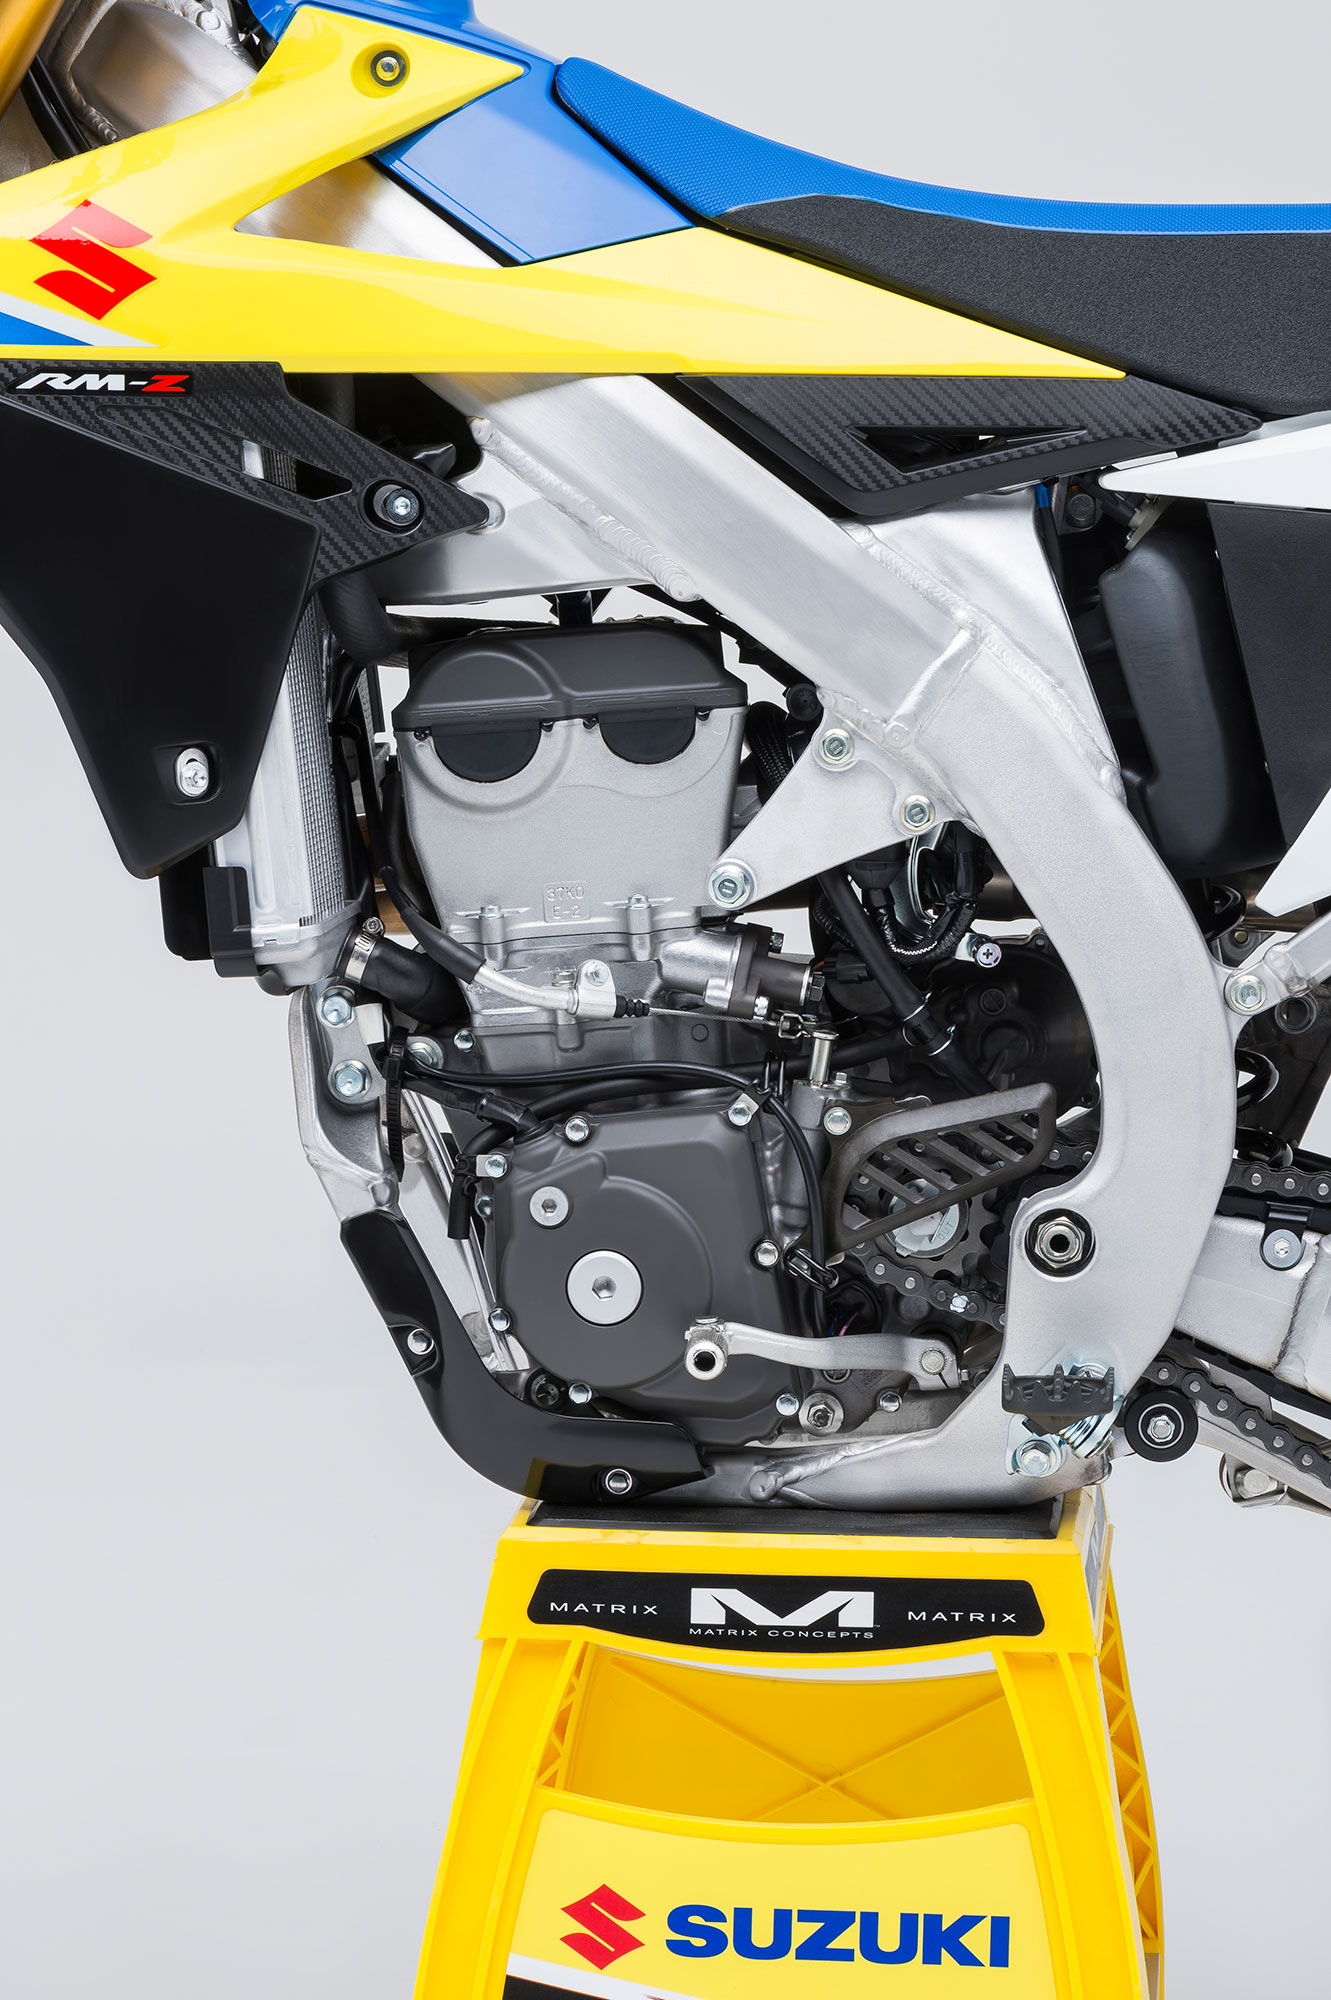 When you look closely you can tell this isn't an all-new engine, but many updates inside can be found on the 2018 Suzuki RM-Z450.